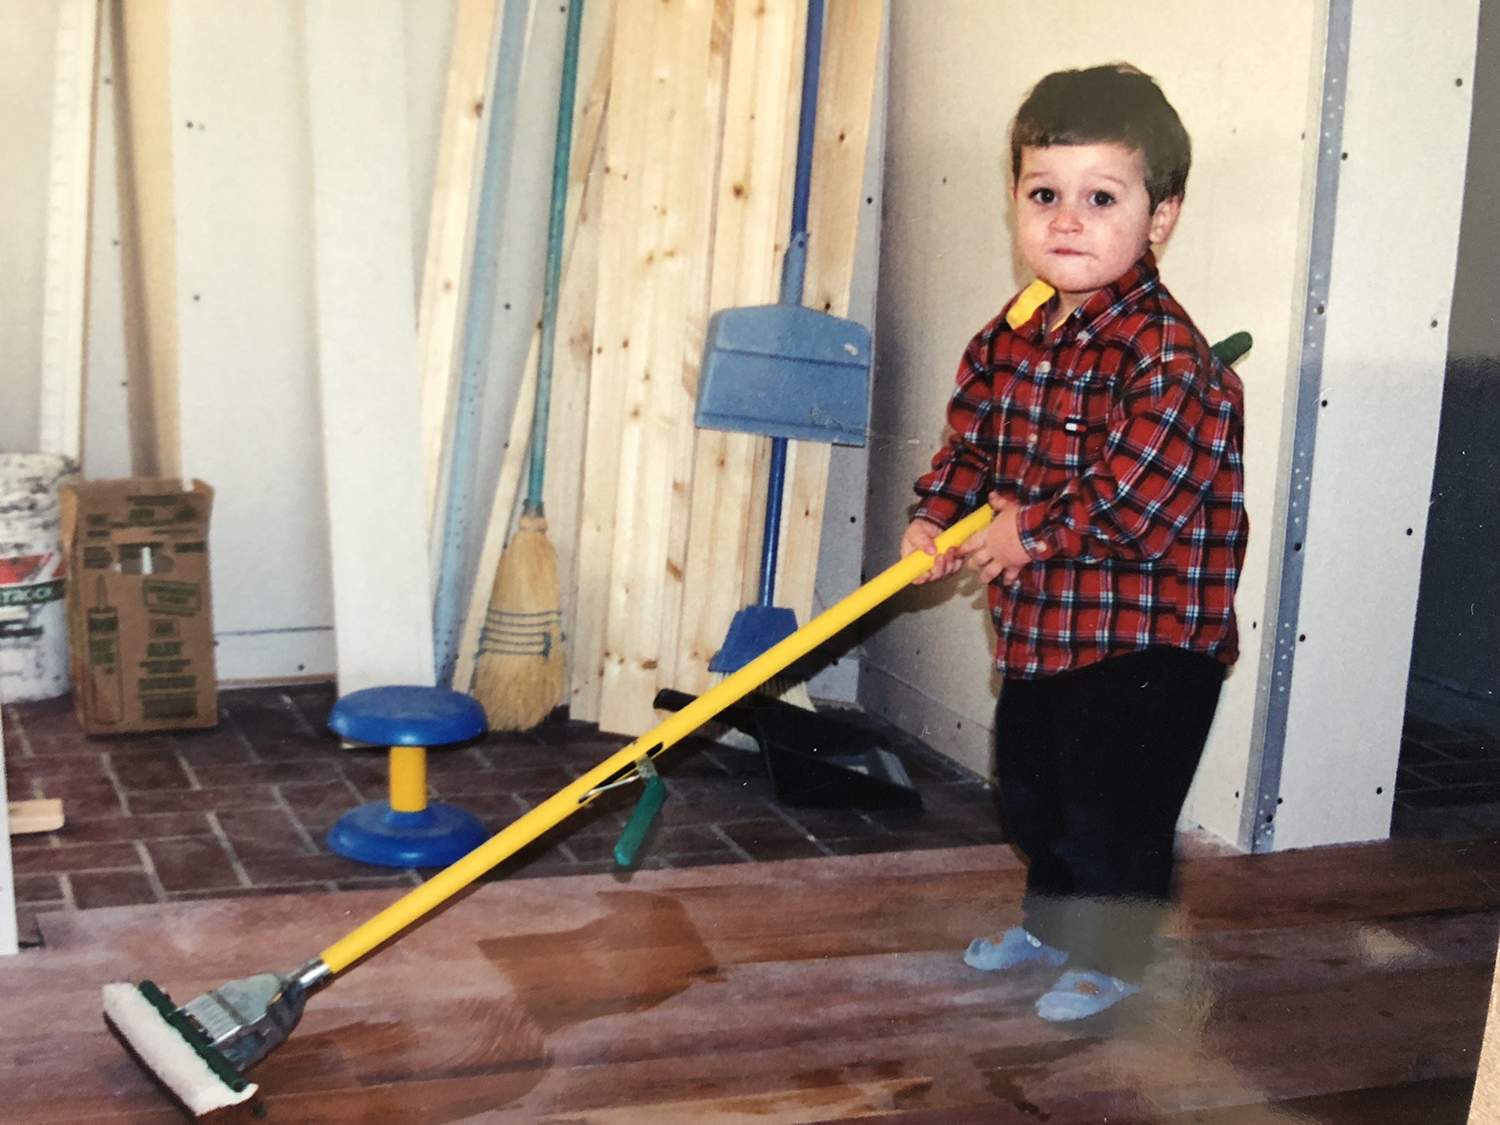 Kids helping with DIY House Flip